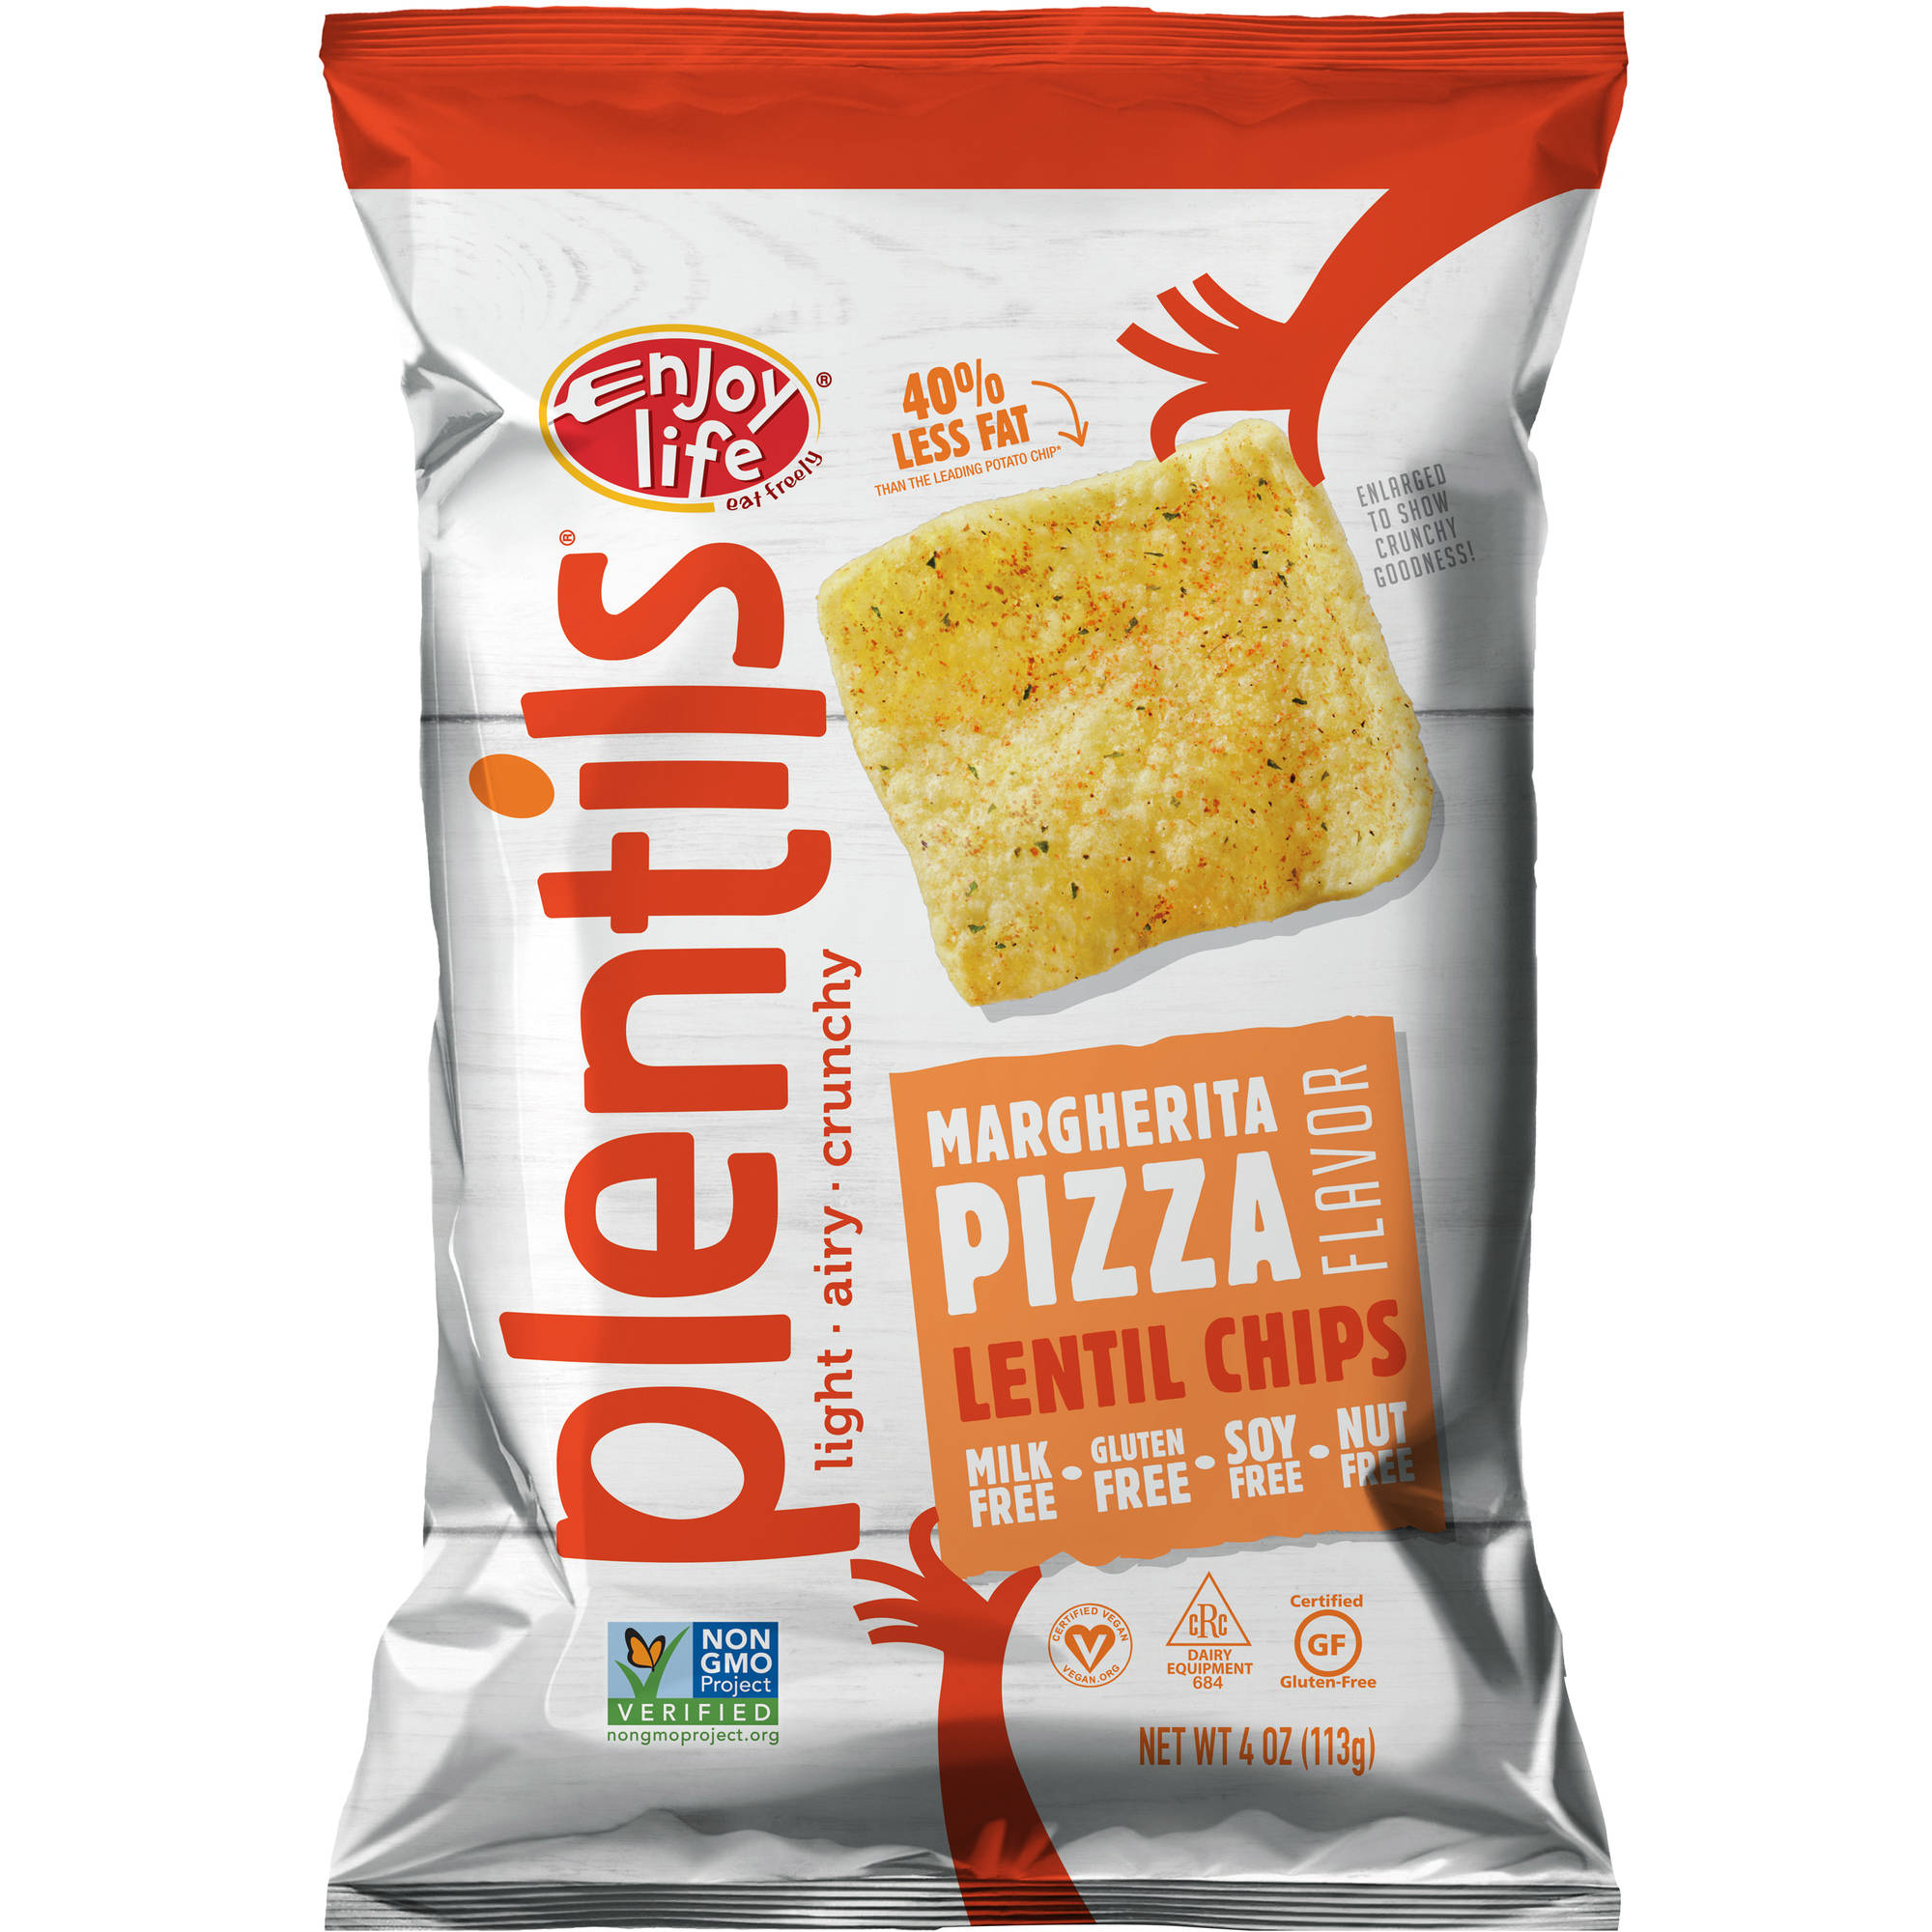 Enjoy Life Plentils Margherita Pizza Lentil Chips, 4 oz, (Pack of 12)